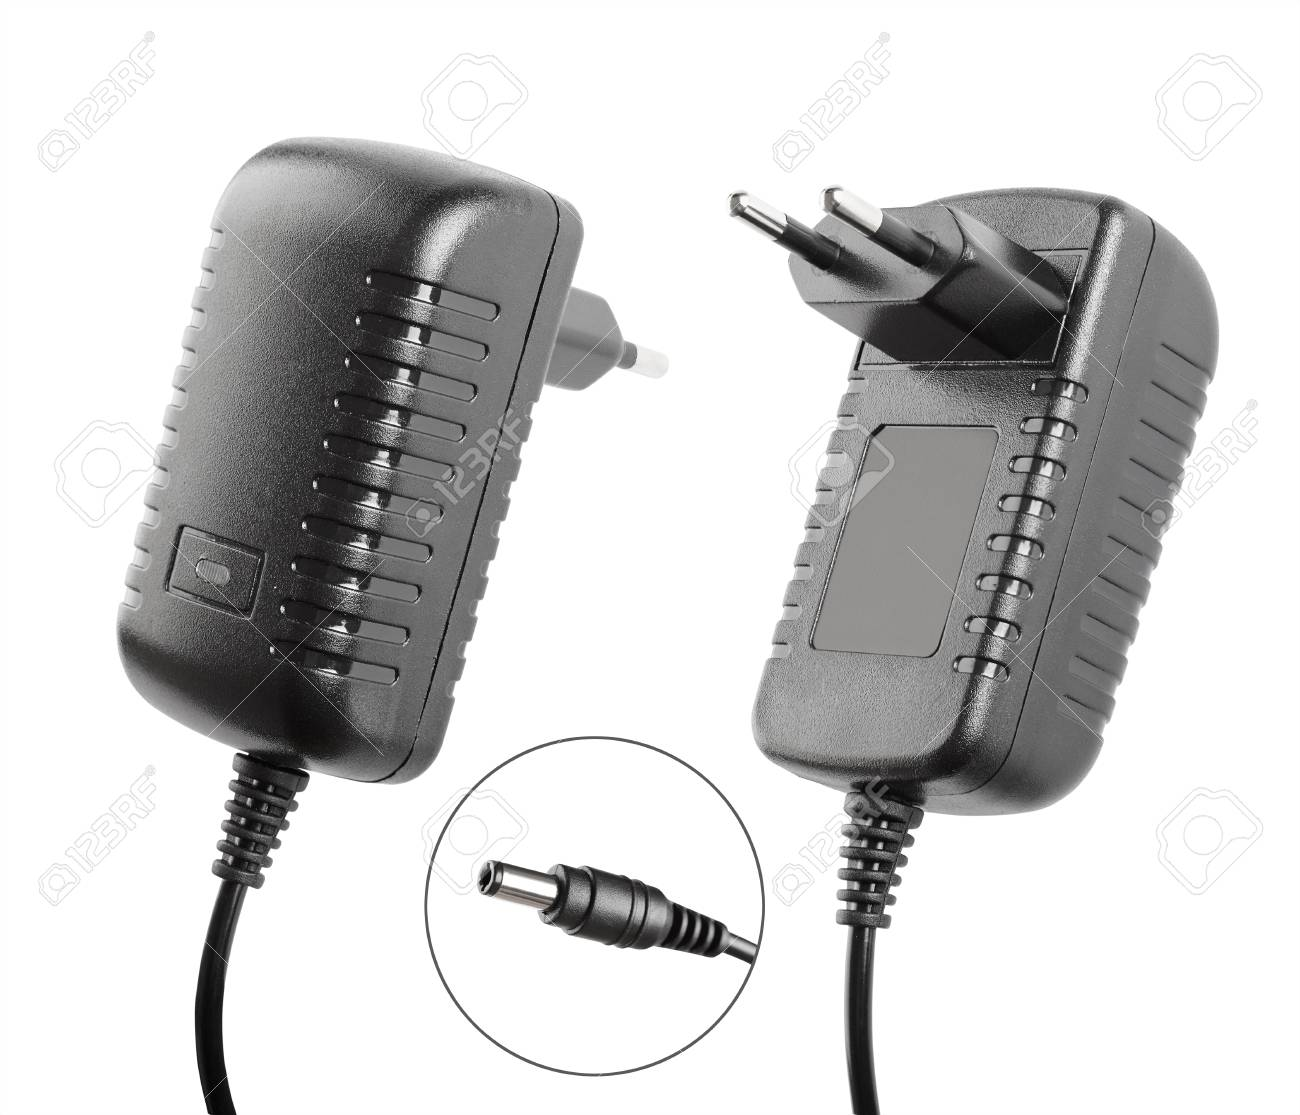 AC Adapter, DC Power Supply, Household Appliance Stock Photo ...